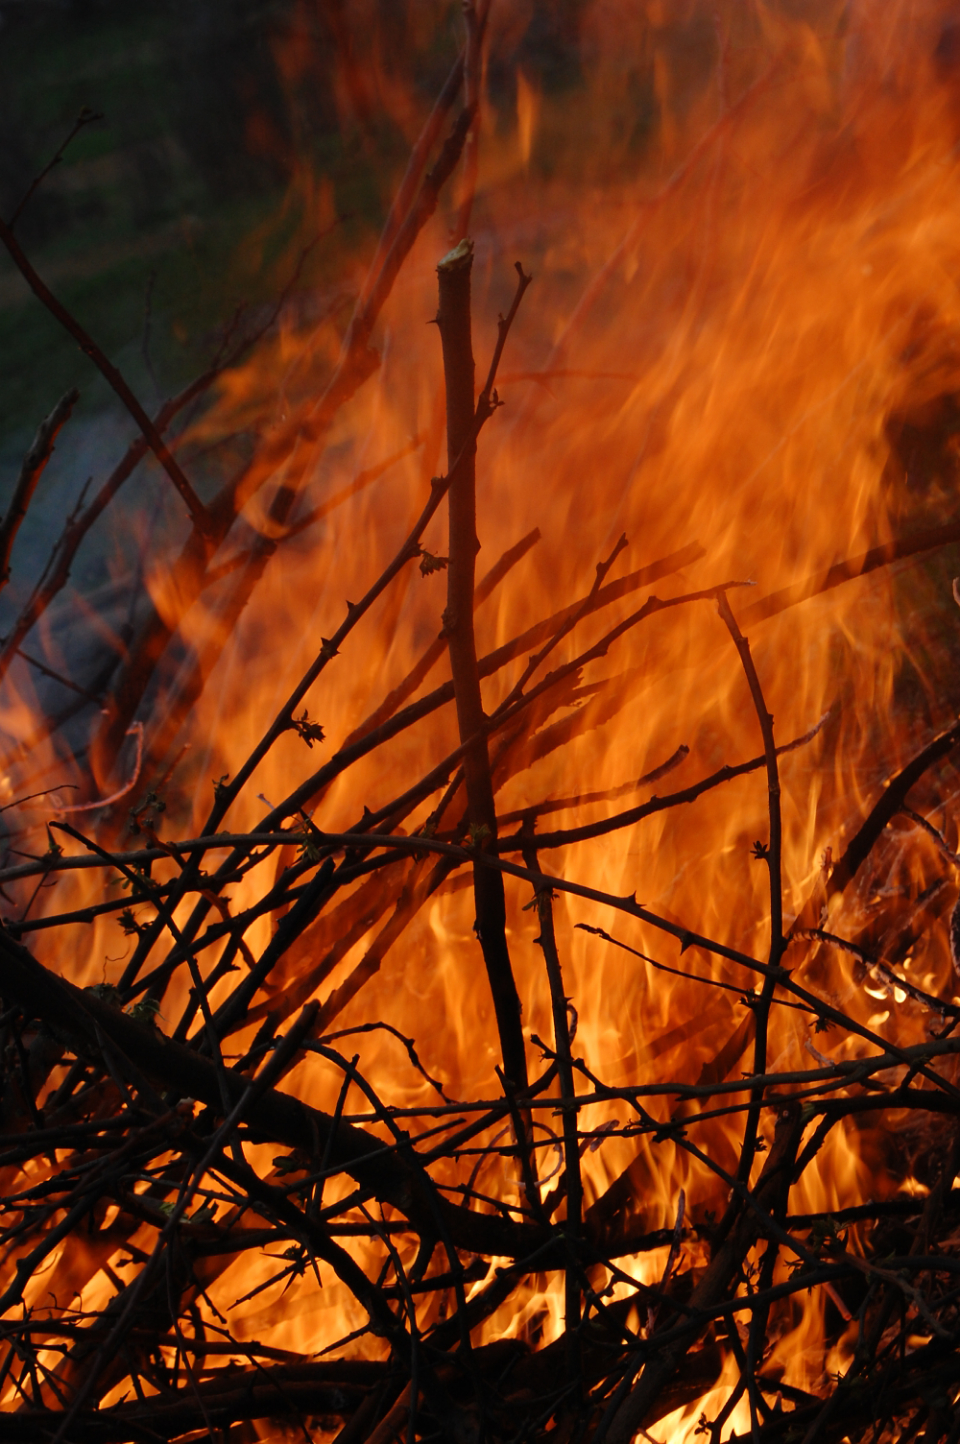 hot fire outside elements flames burn brush wood